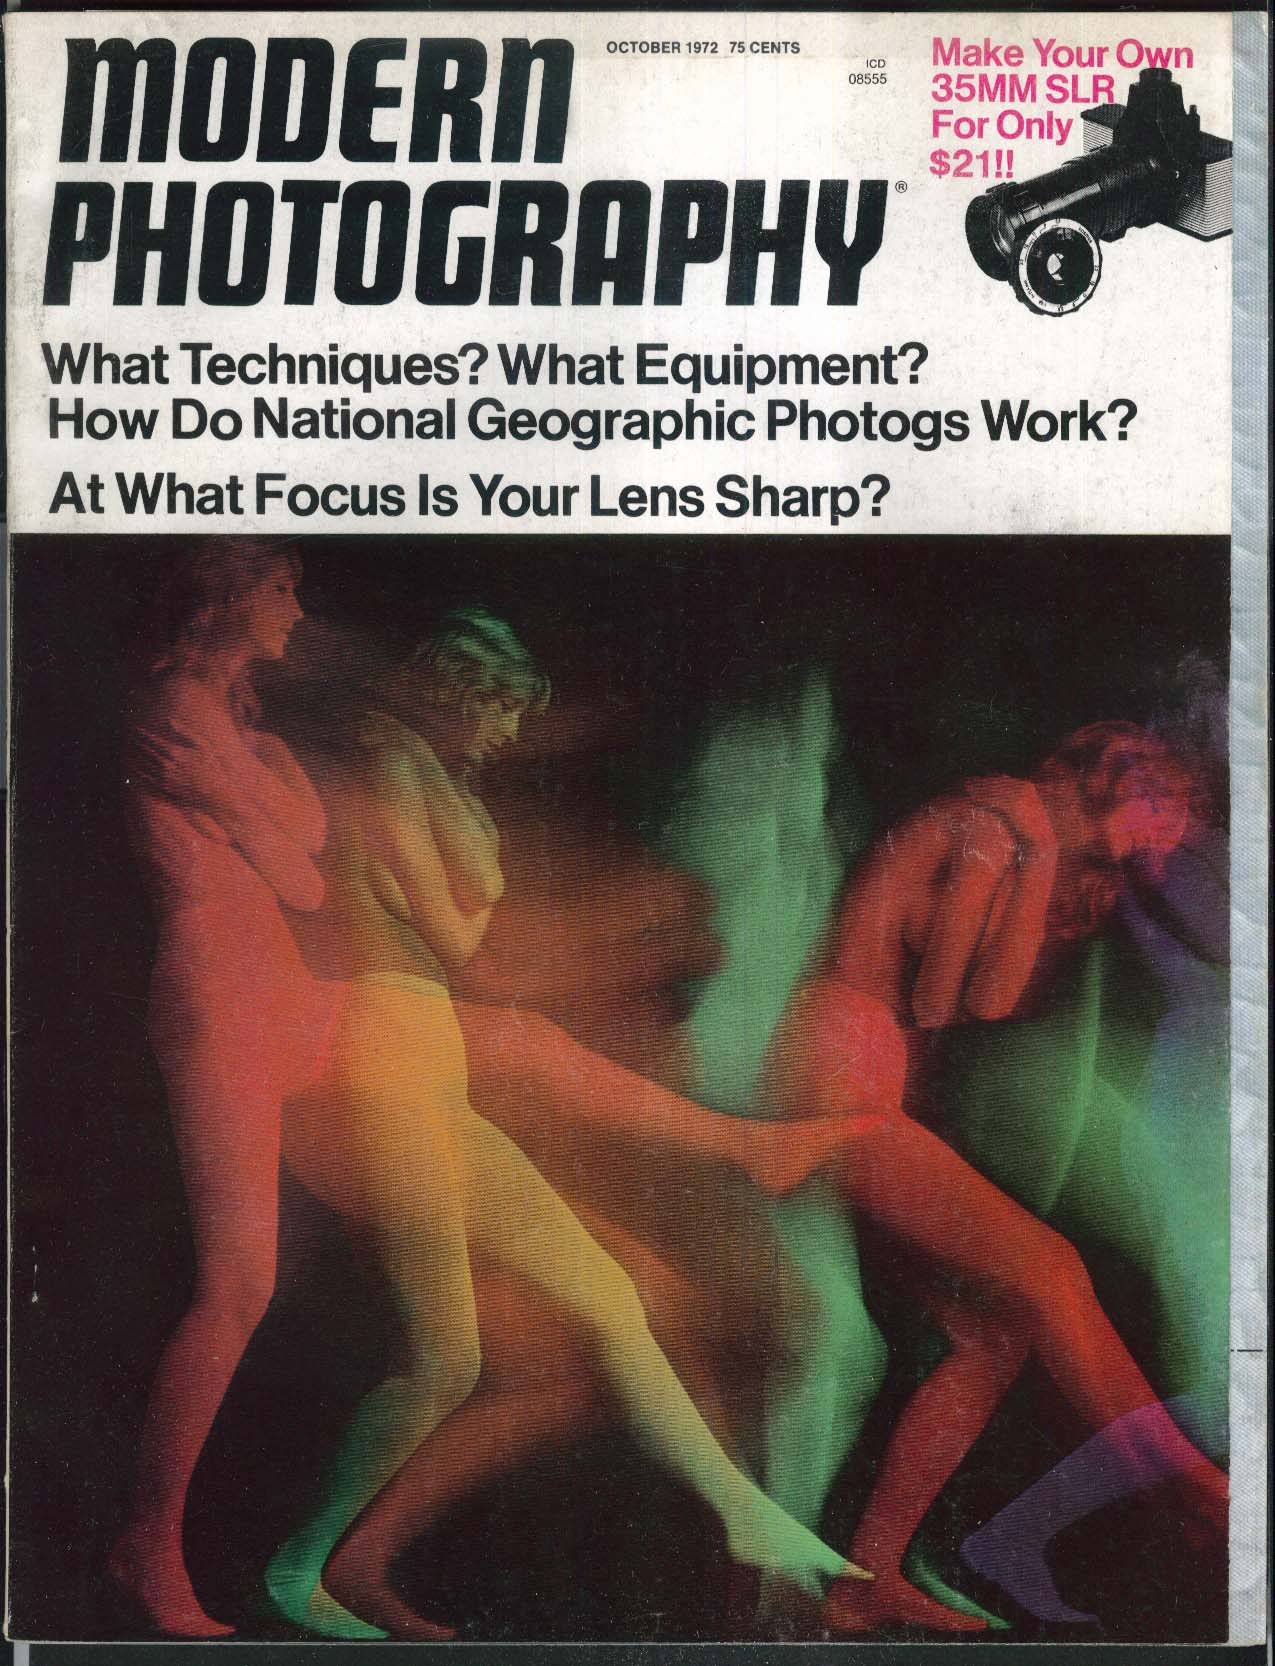 MODERN PHOTOGRAPHY National Geographic Glossy Prints Pentacon Loading ++ 10 1972